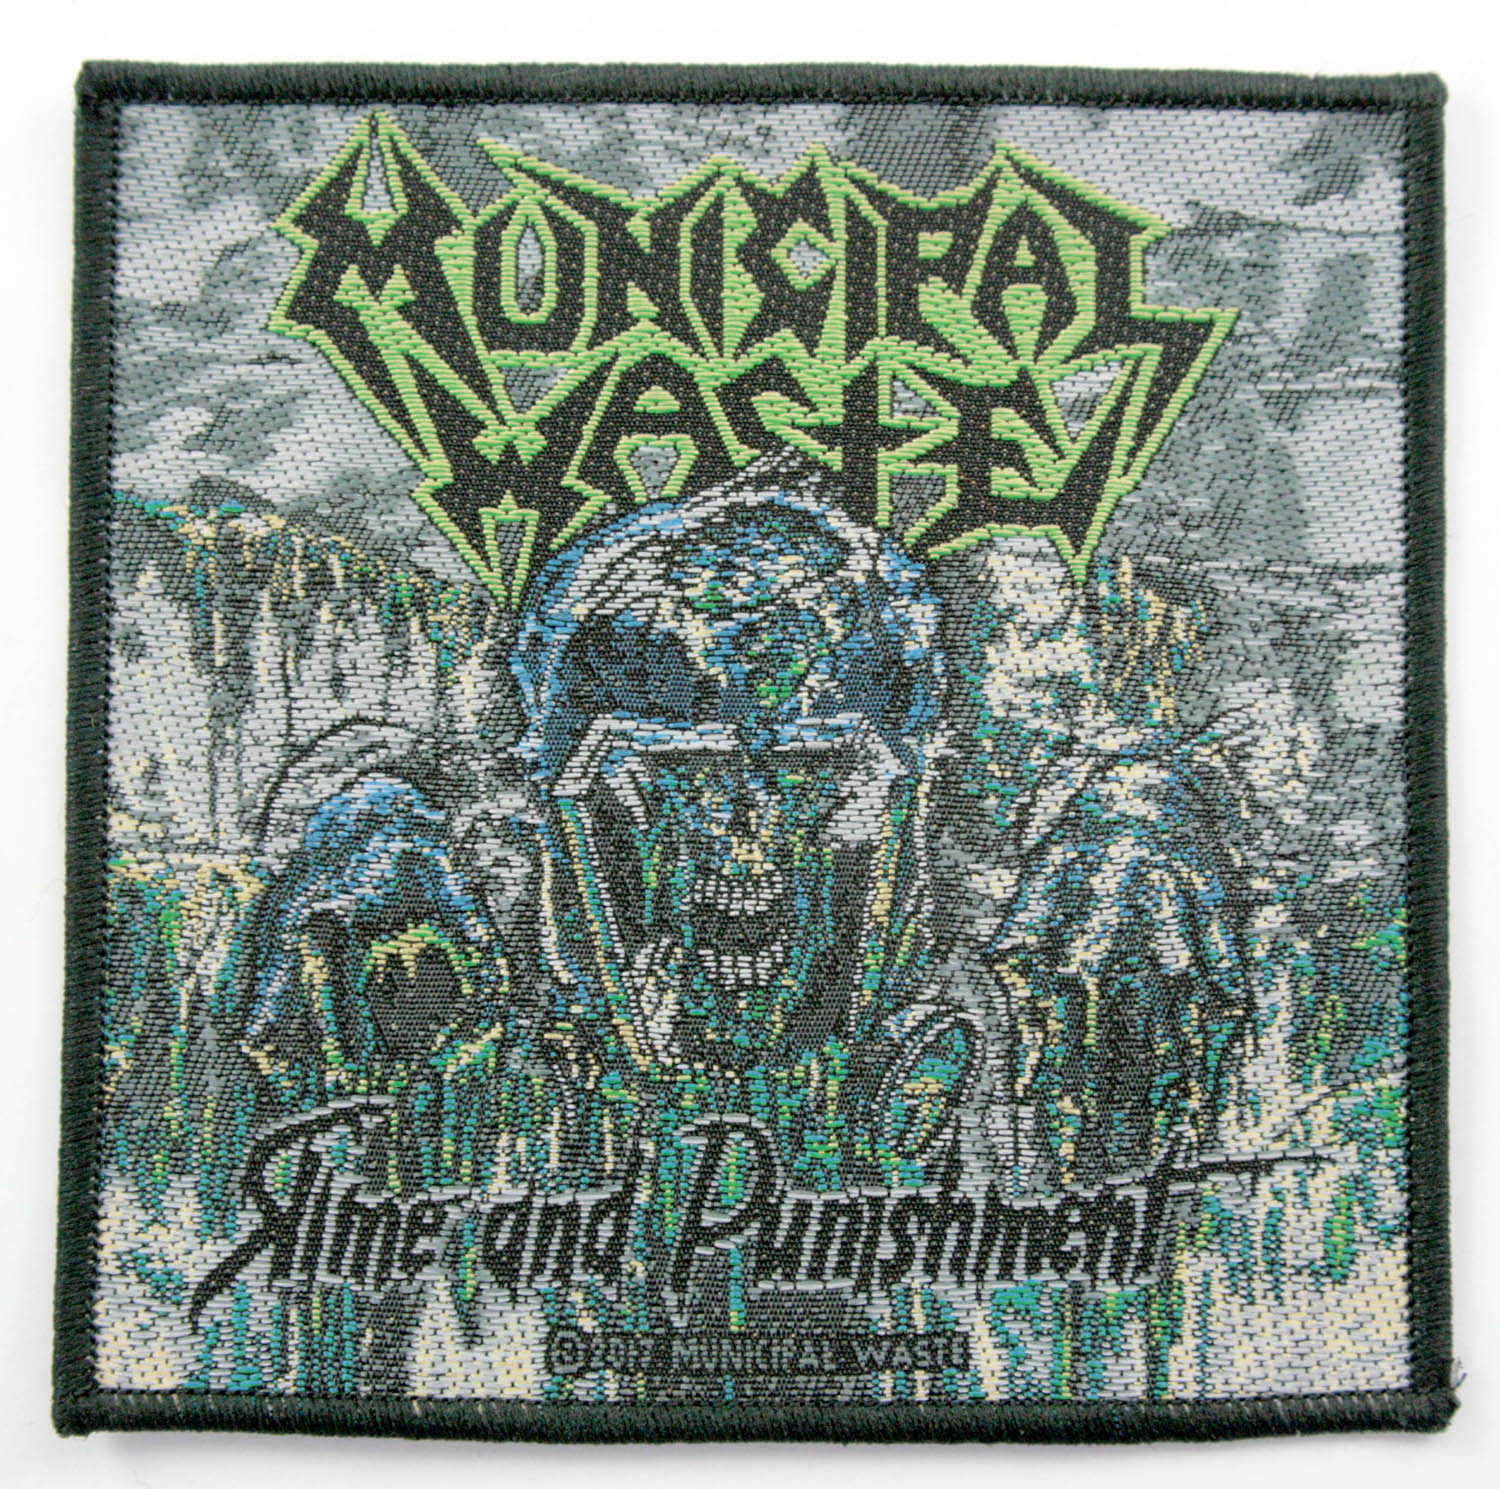 Muniicipal Waste Patch